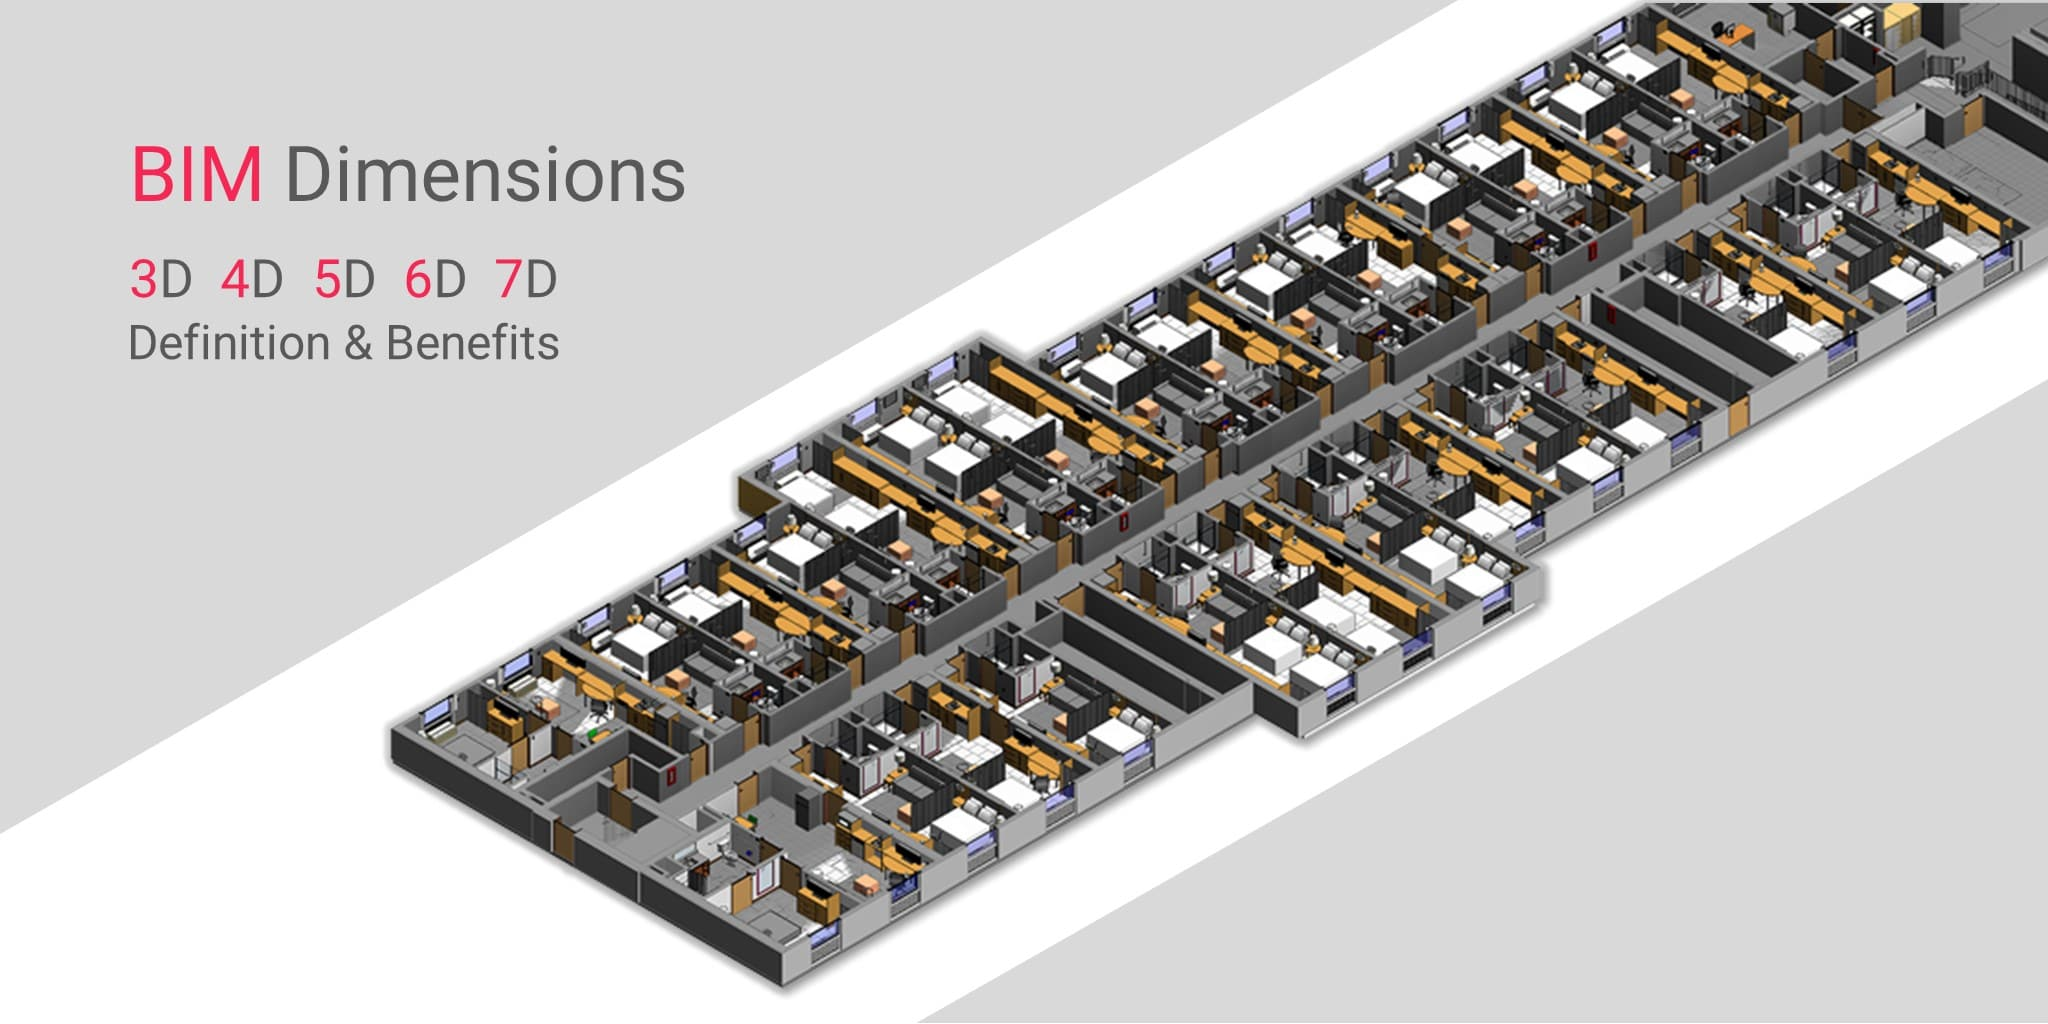 BIM-Dimensions-3D-4D-5D-6D-7D-Definition-and-Benefits-in-AEC